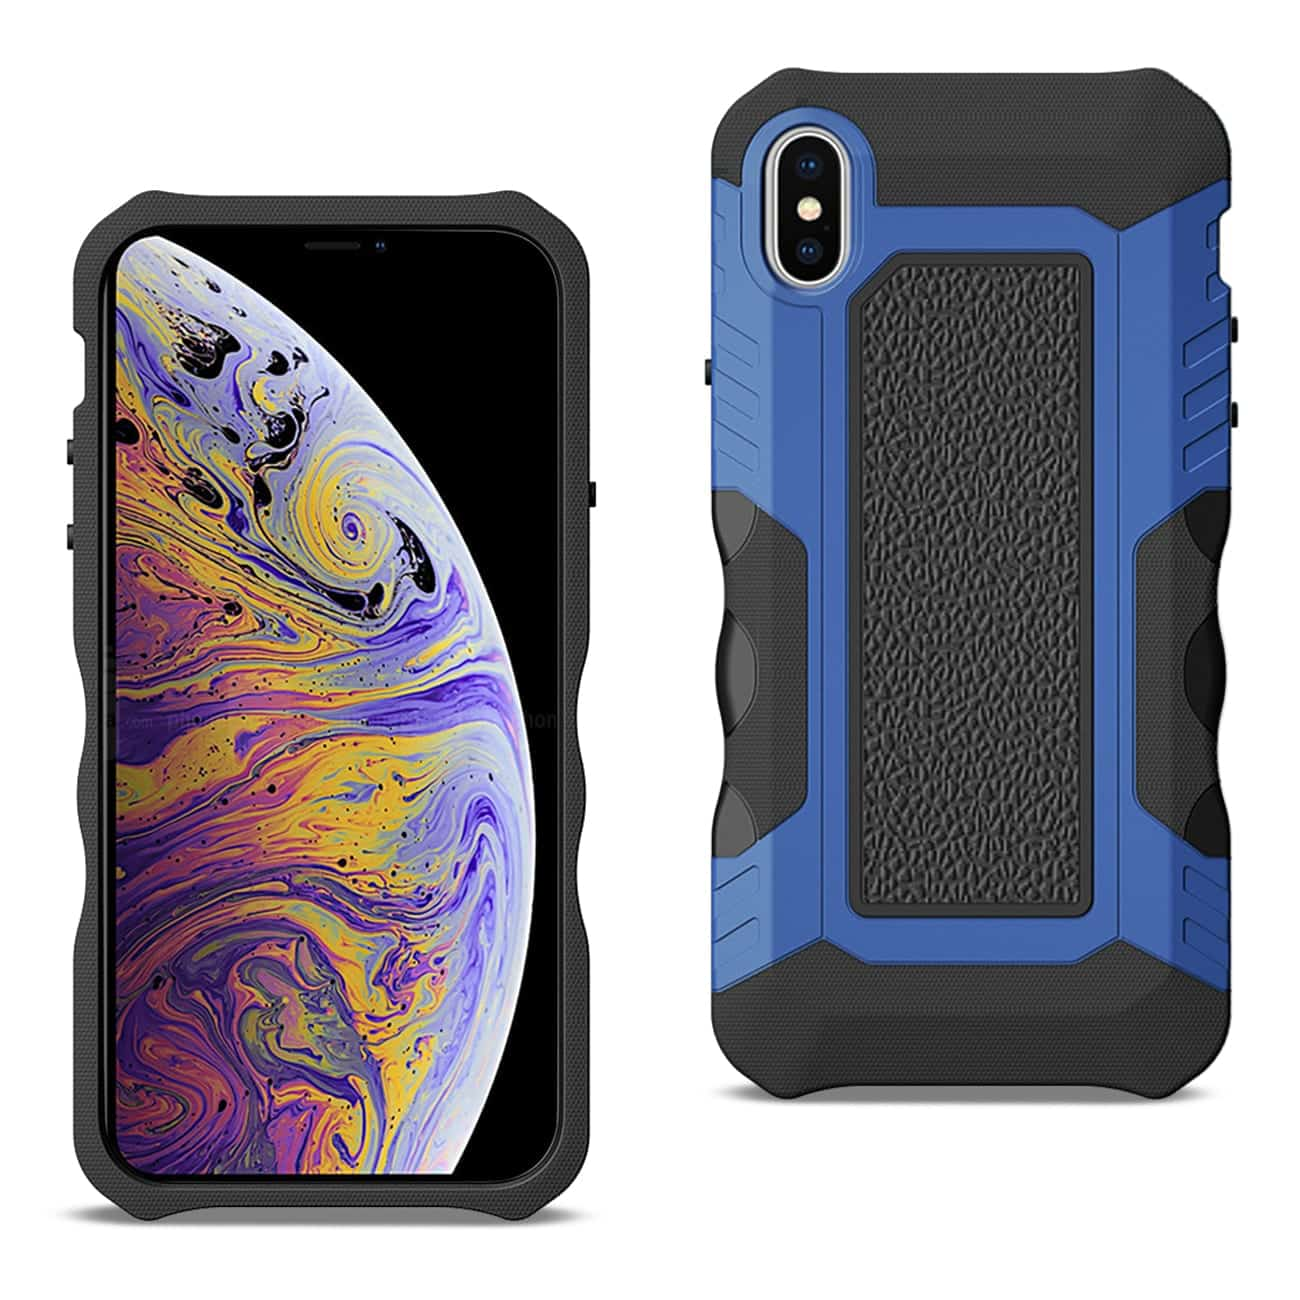 APPLE IPHONE XS MAX Slim Shockproof Protective Anti-Slip Heavy duty Case In Black/Blue